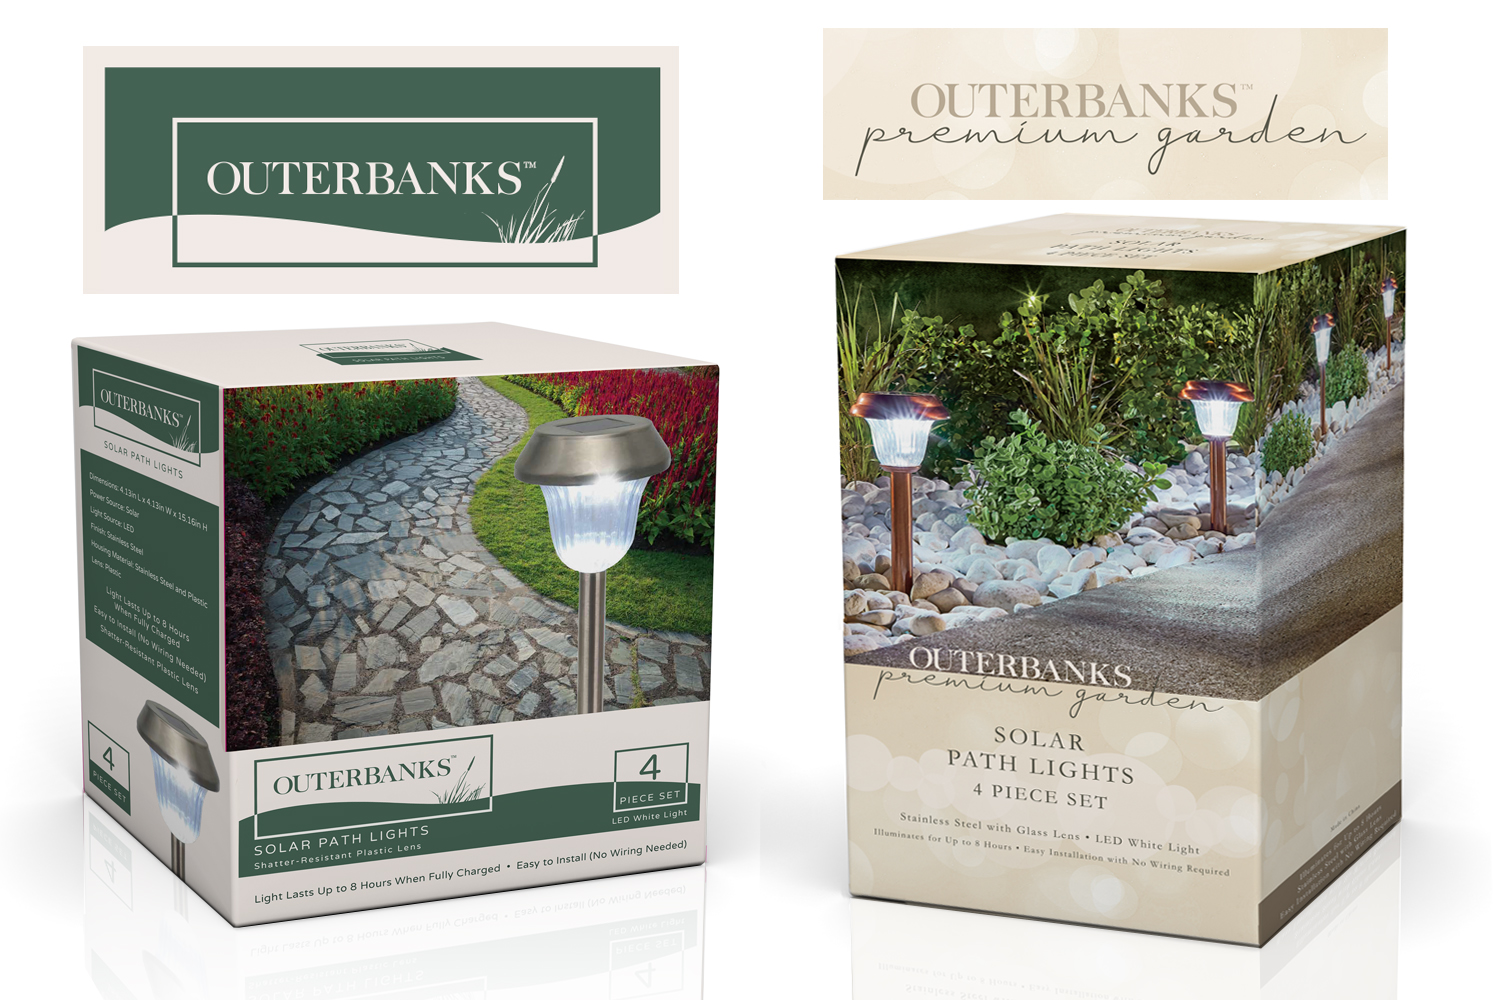 Outerbanks and Outerbanks Premium  - I led this project to segment the brand in two price point tiers.